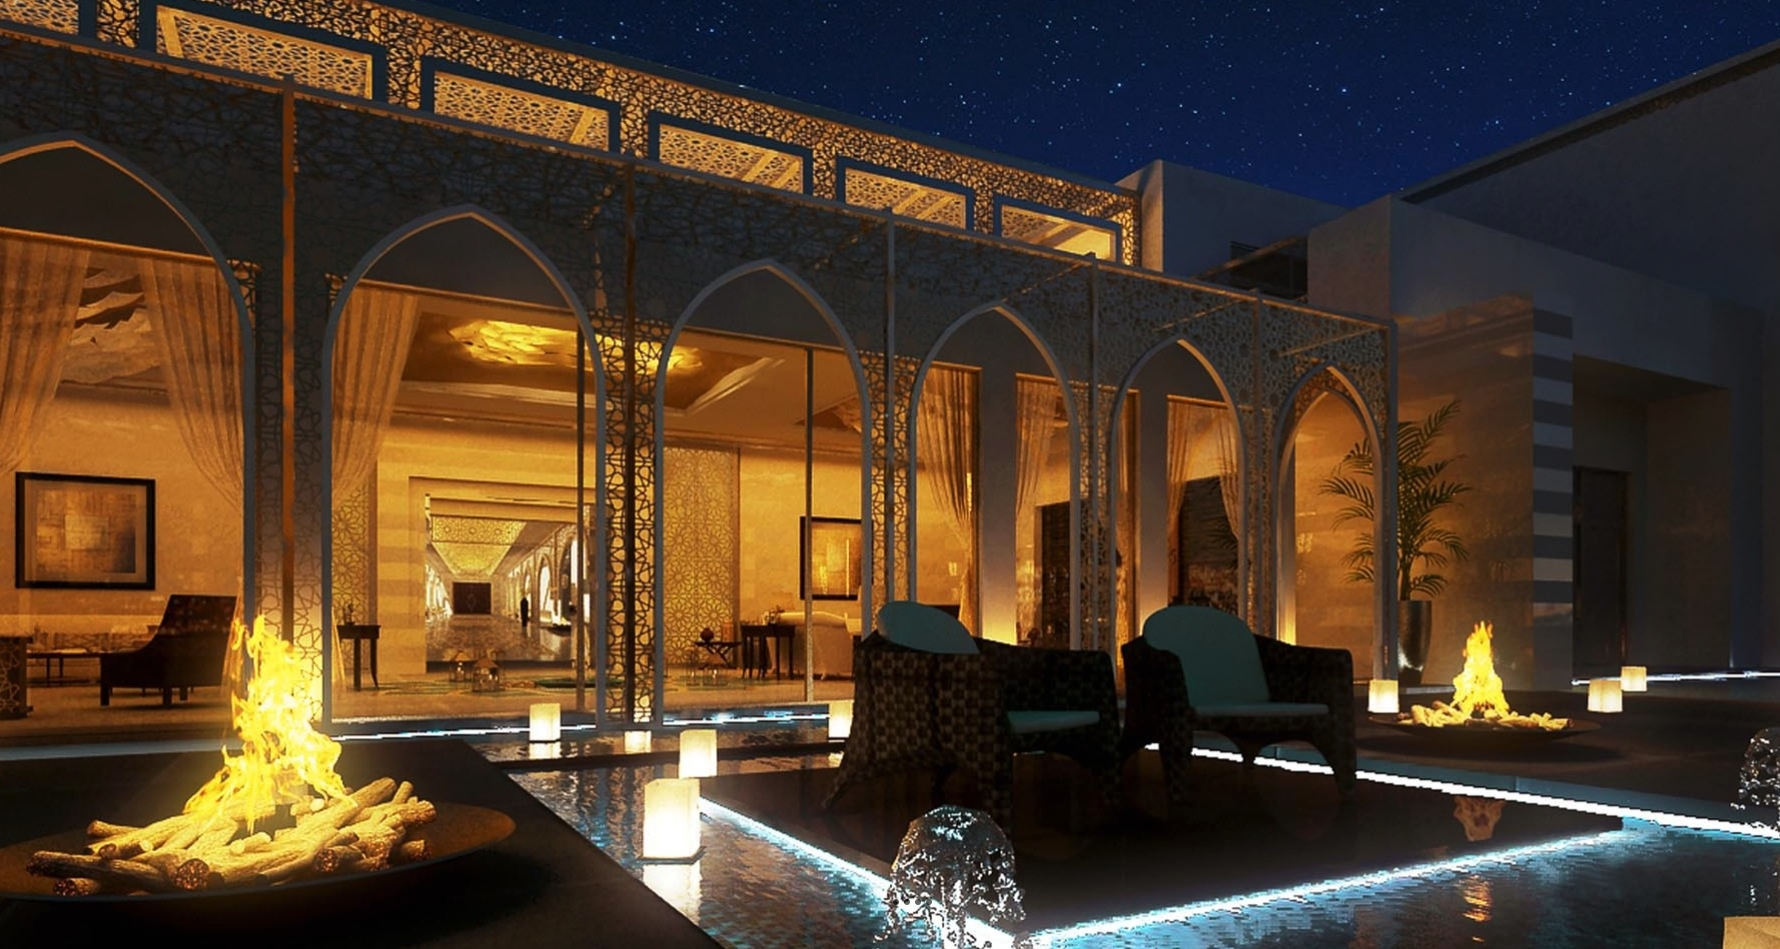 Outdoor moroccan design ideas Interior Design Ideas